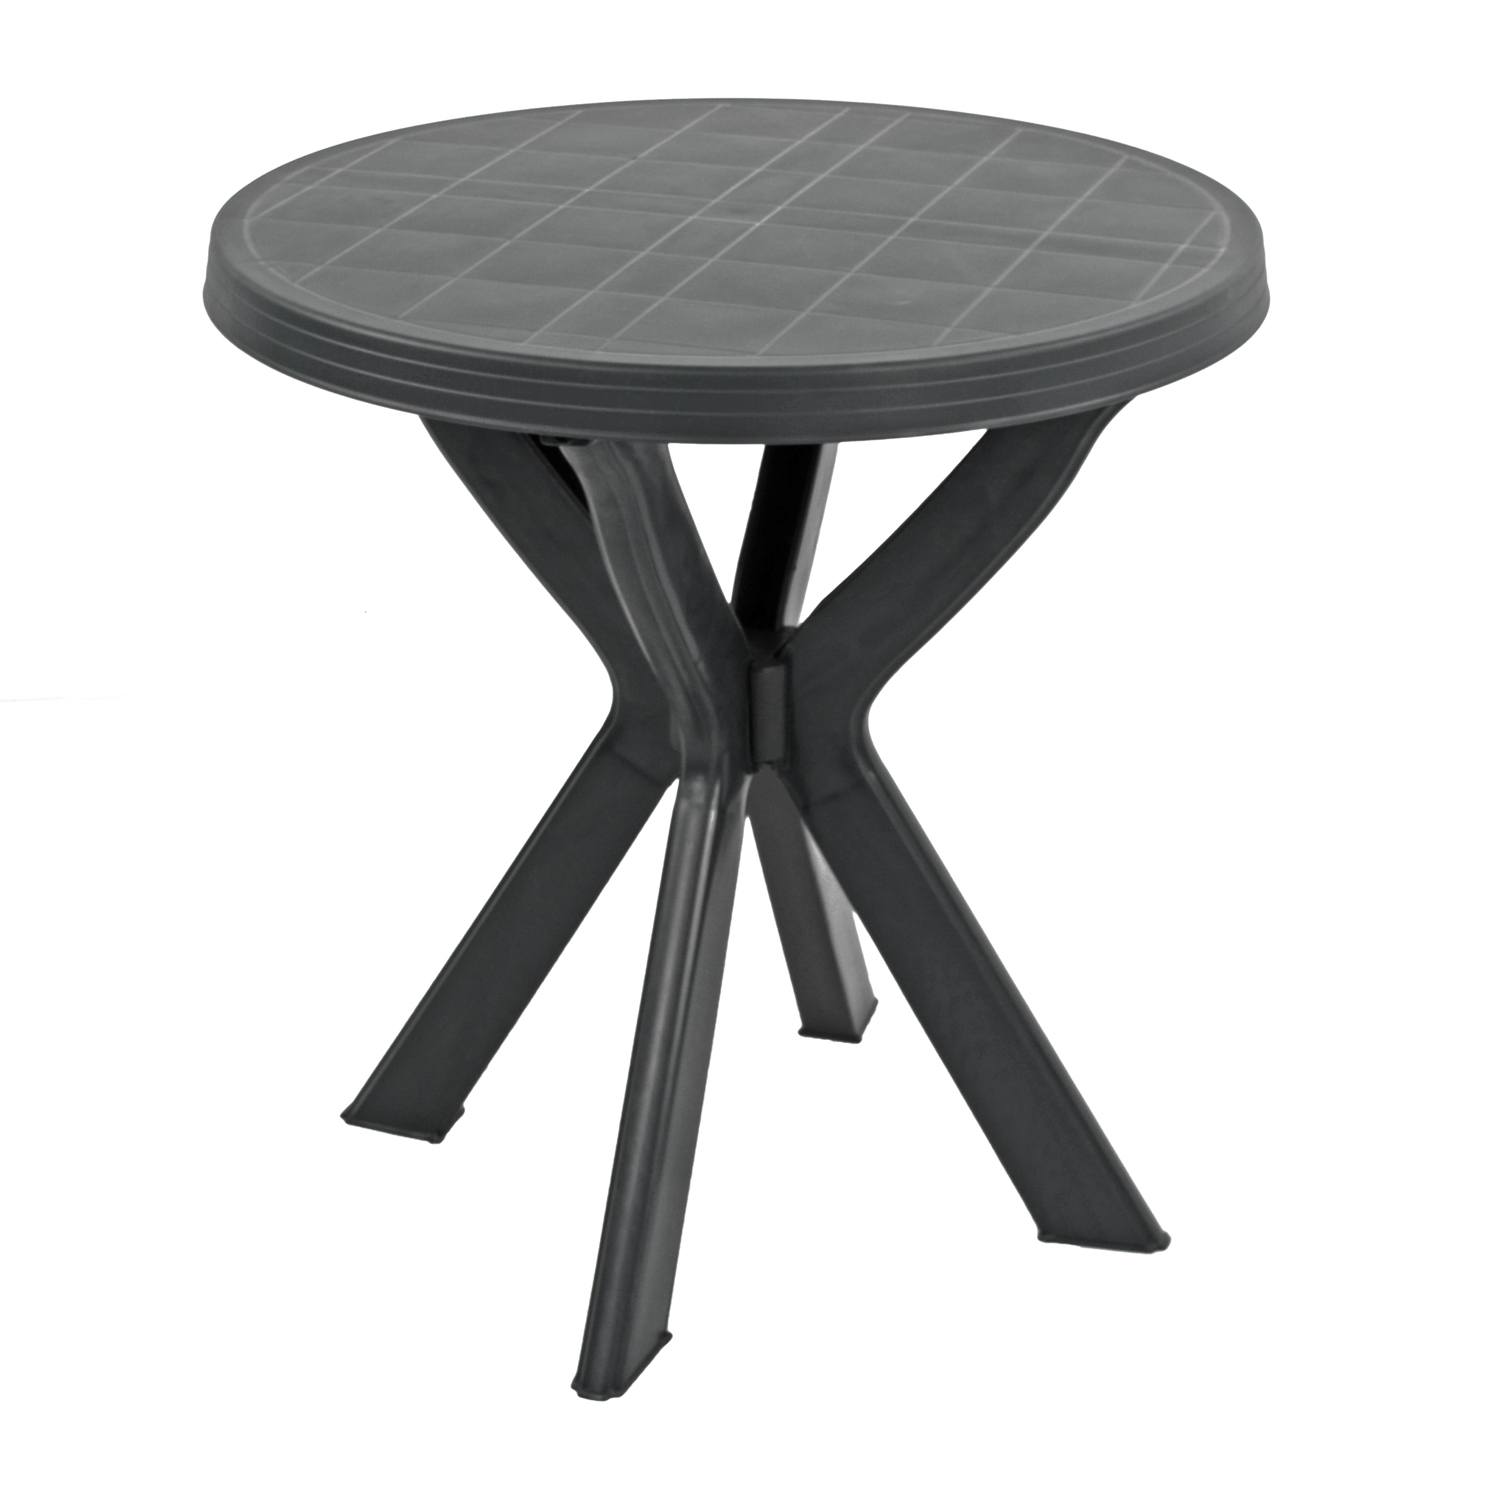 TIVOLI BISTRO TABLE ANTHRACITE PROFILE WS1